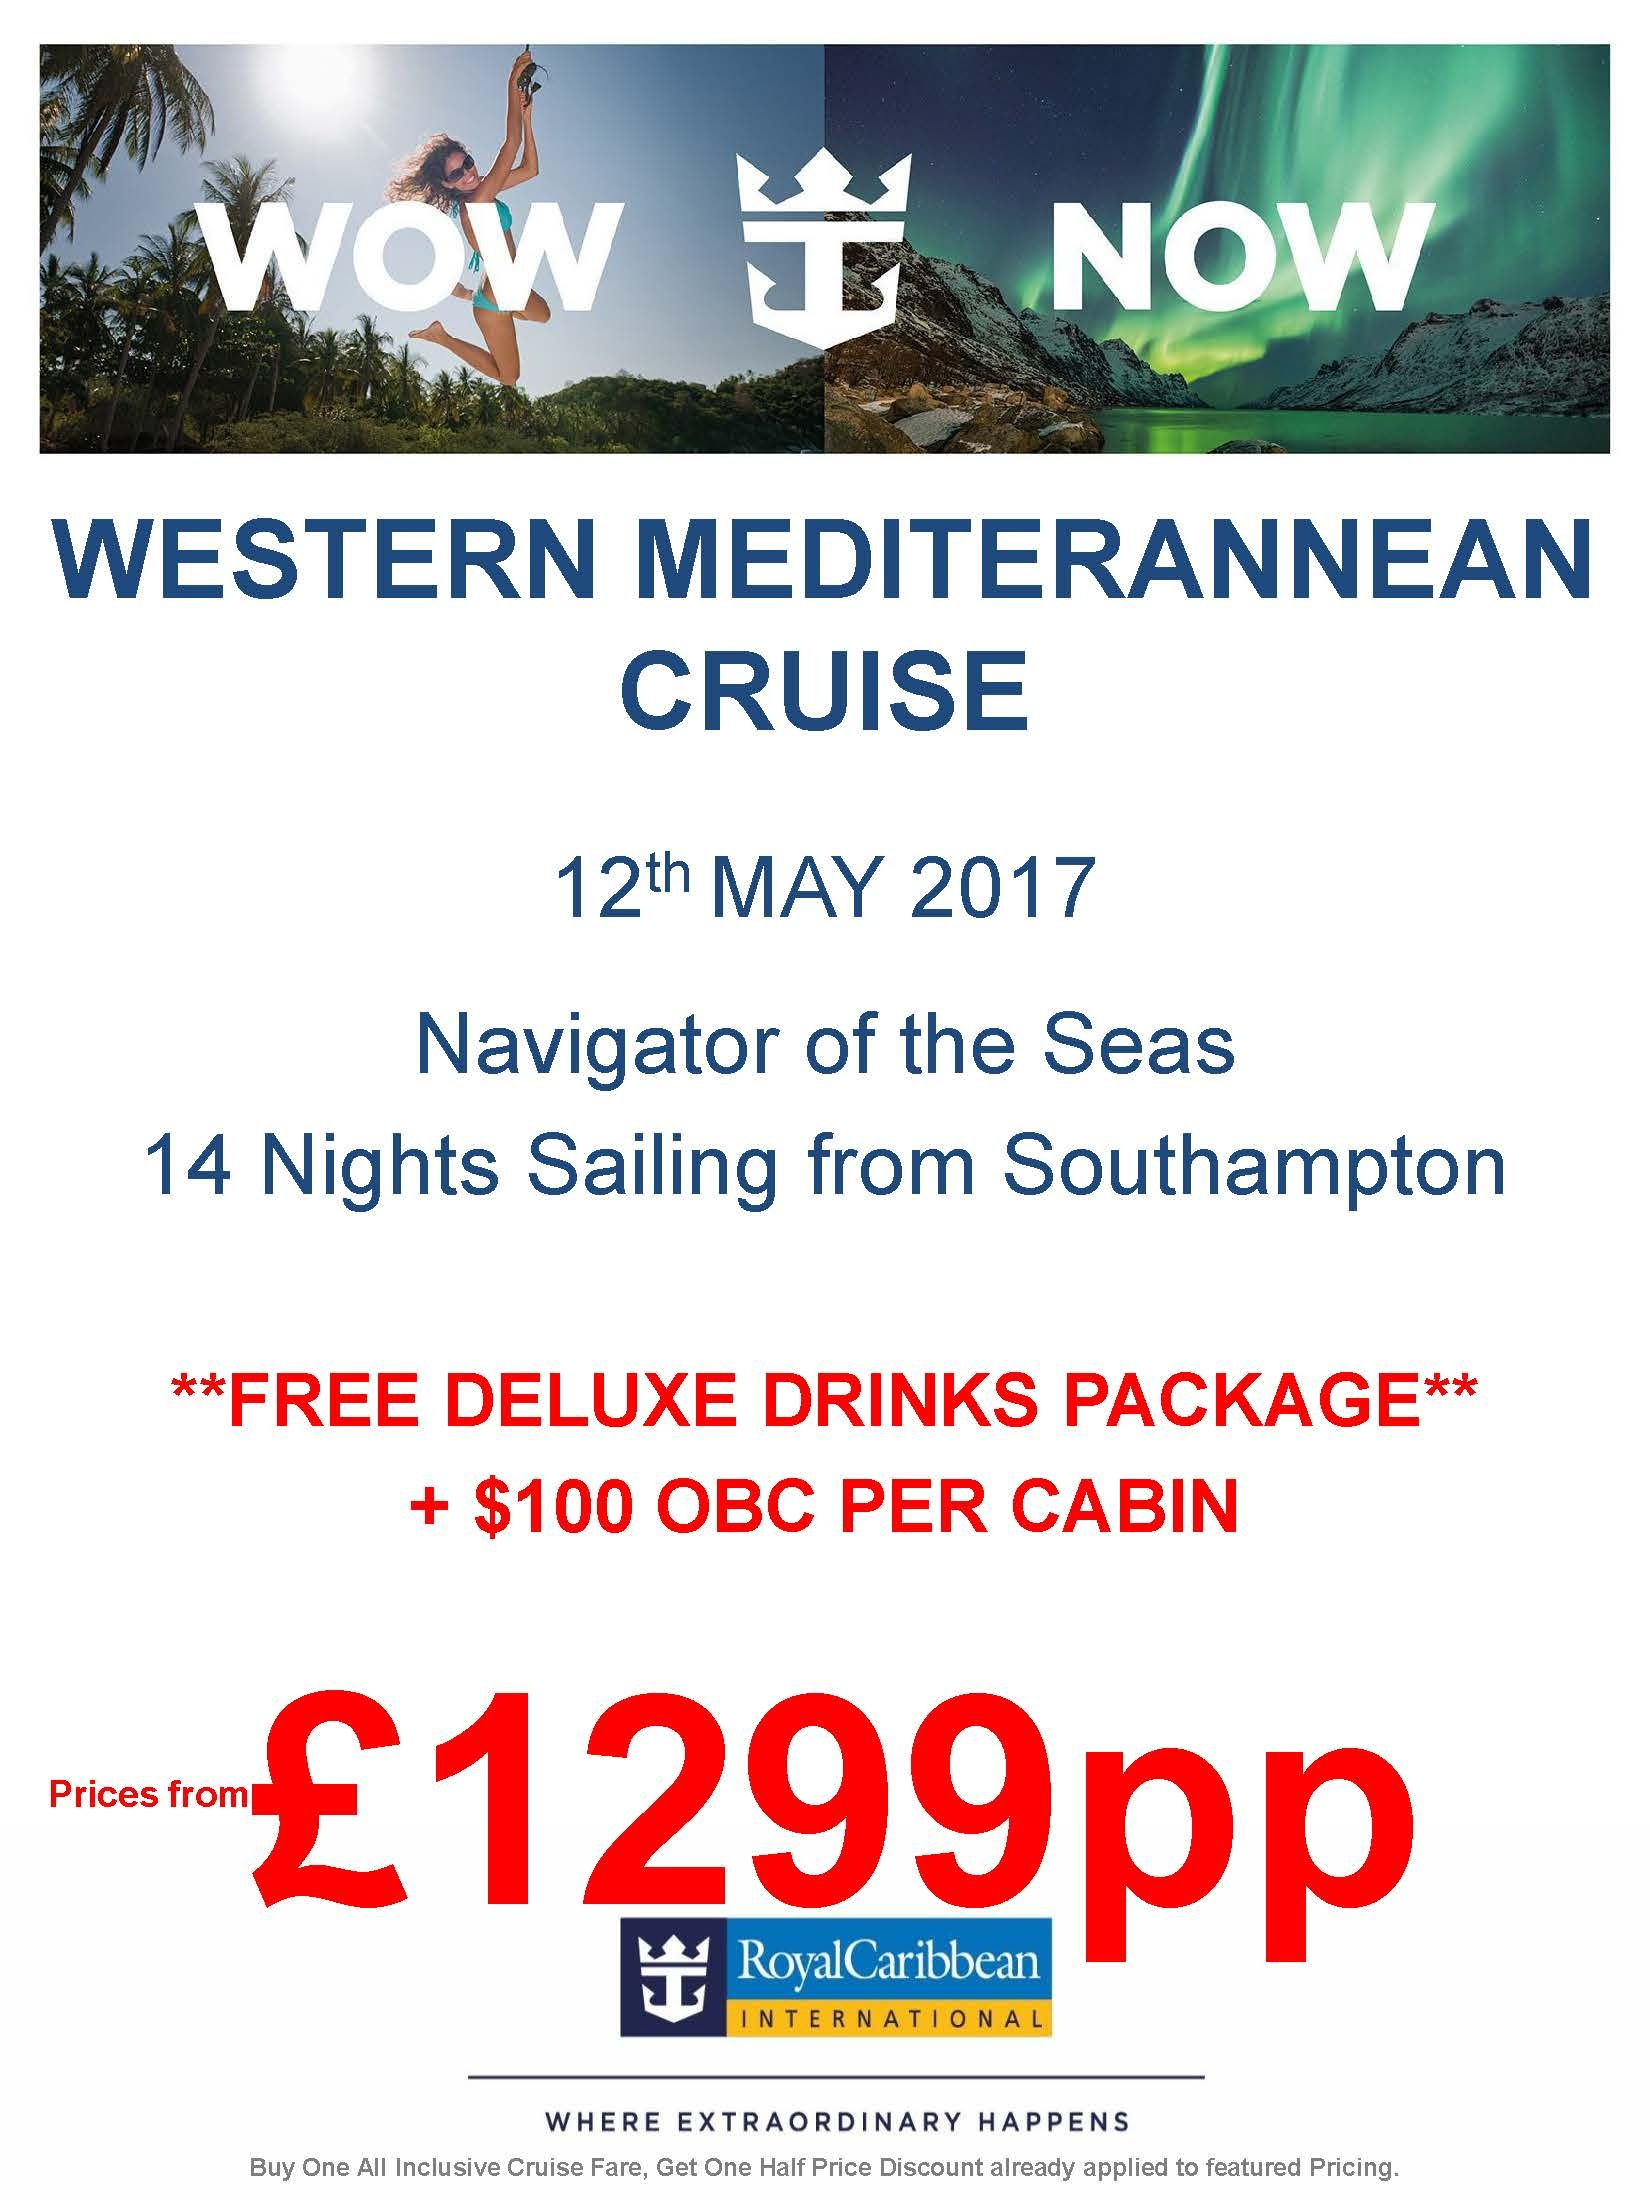 #rccl #lovecruise Western Med May 17 14ngts Southampton Departure **FREE DRINKS ** & ON BOARD SPEND!! WOW FROM £1299 PP call 0800 975 7584